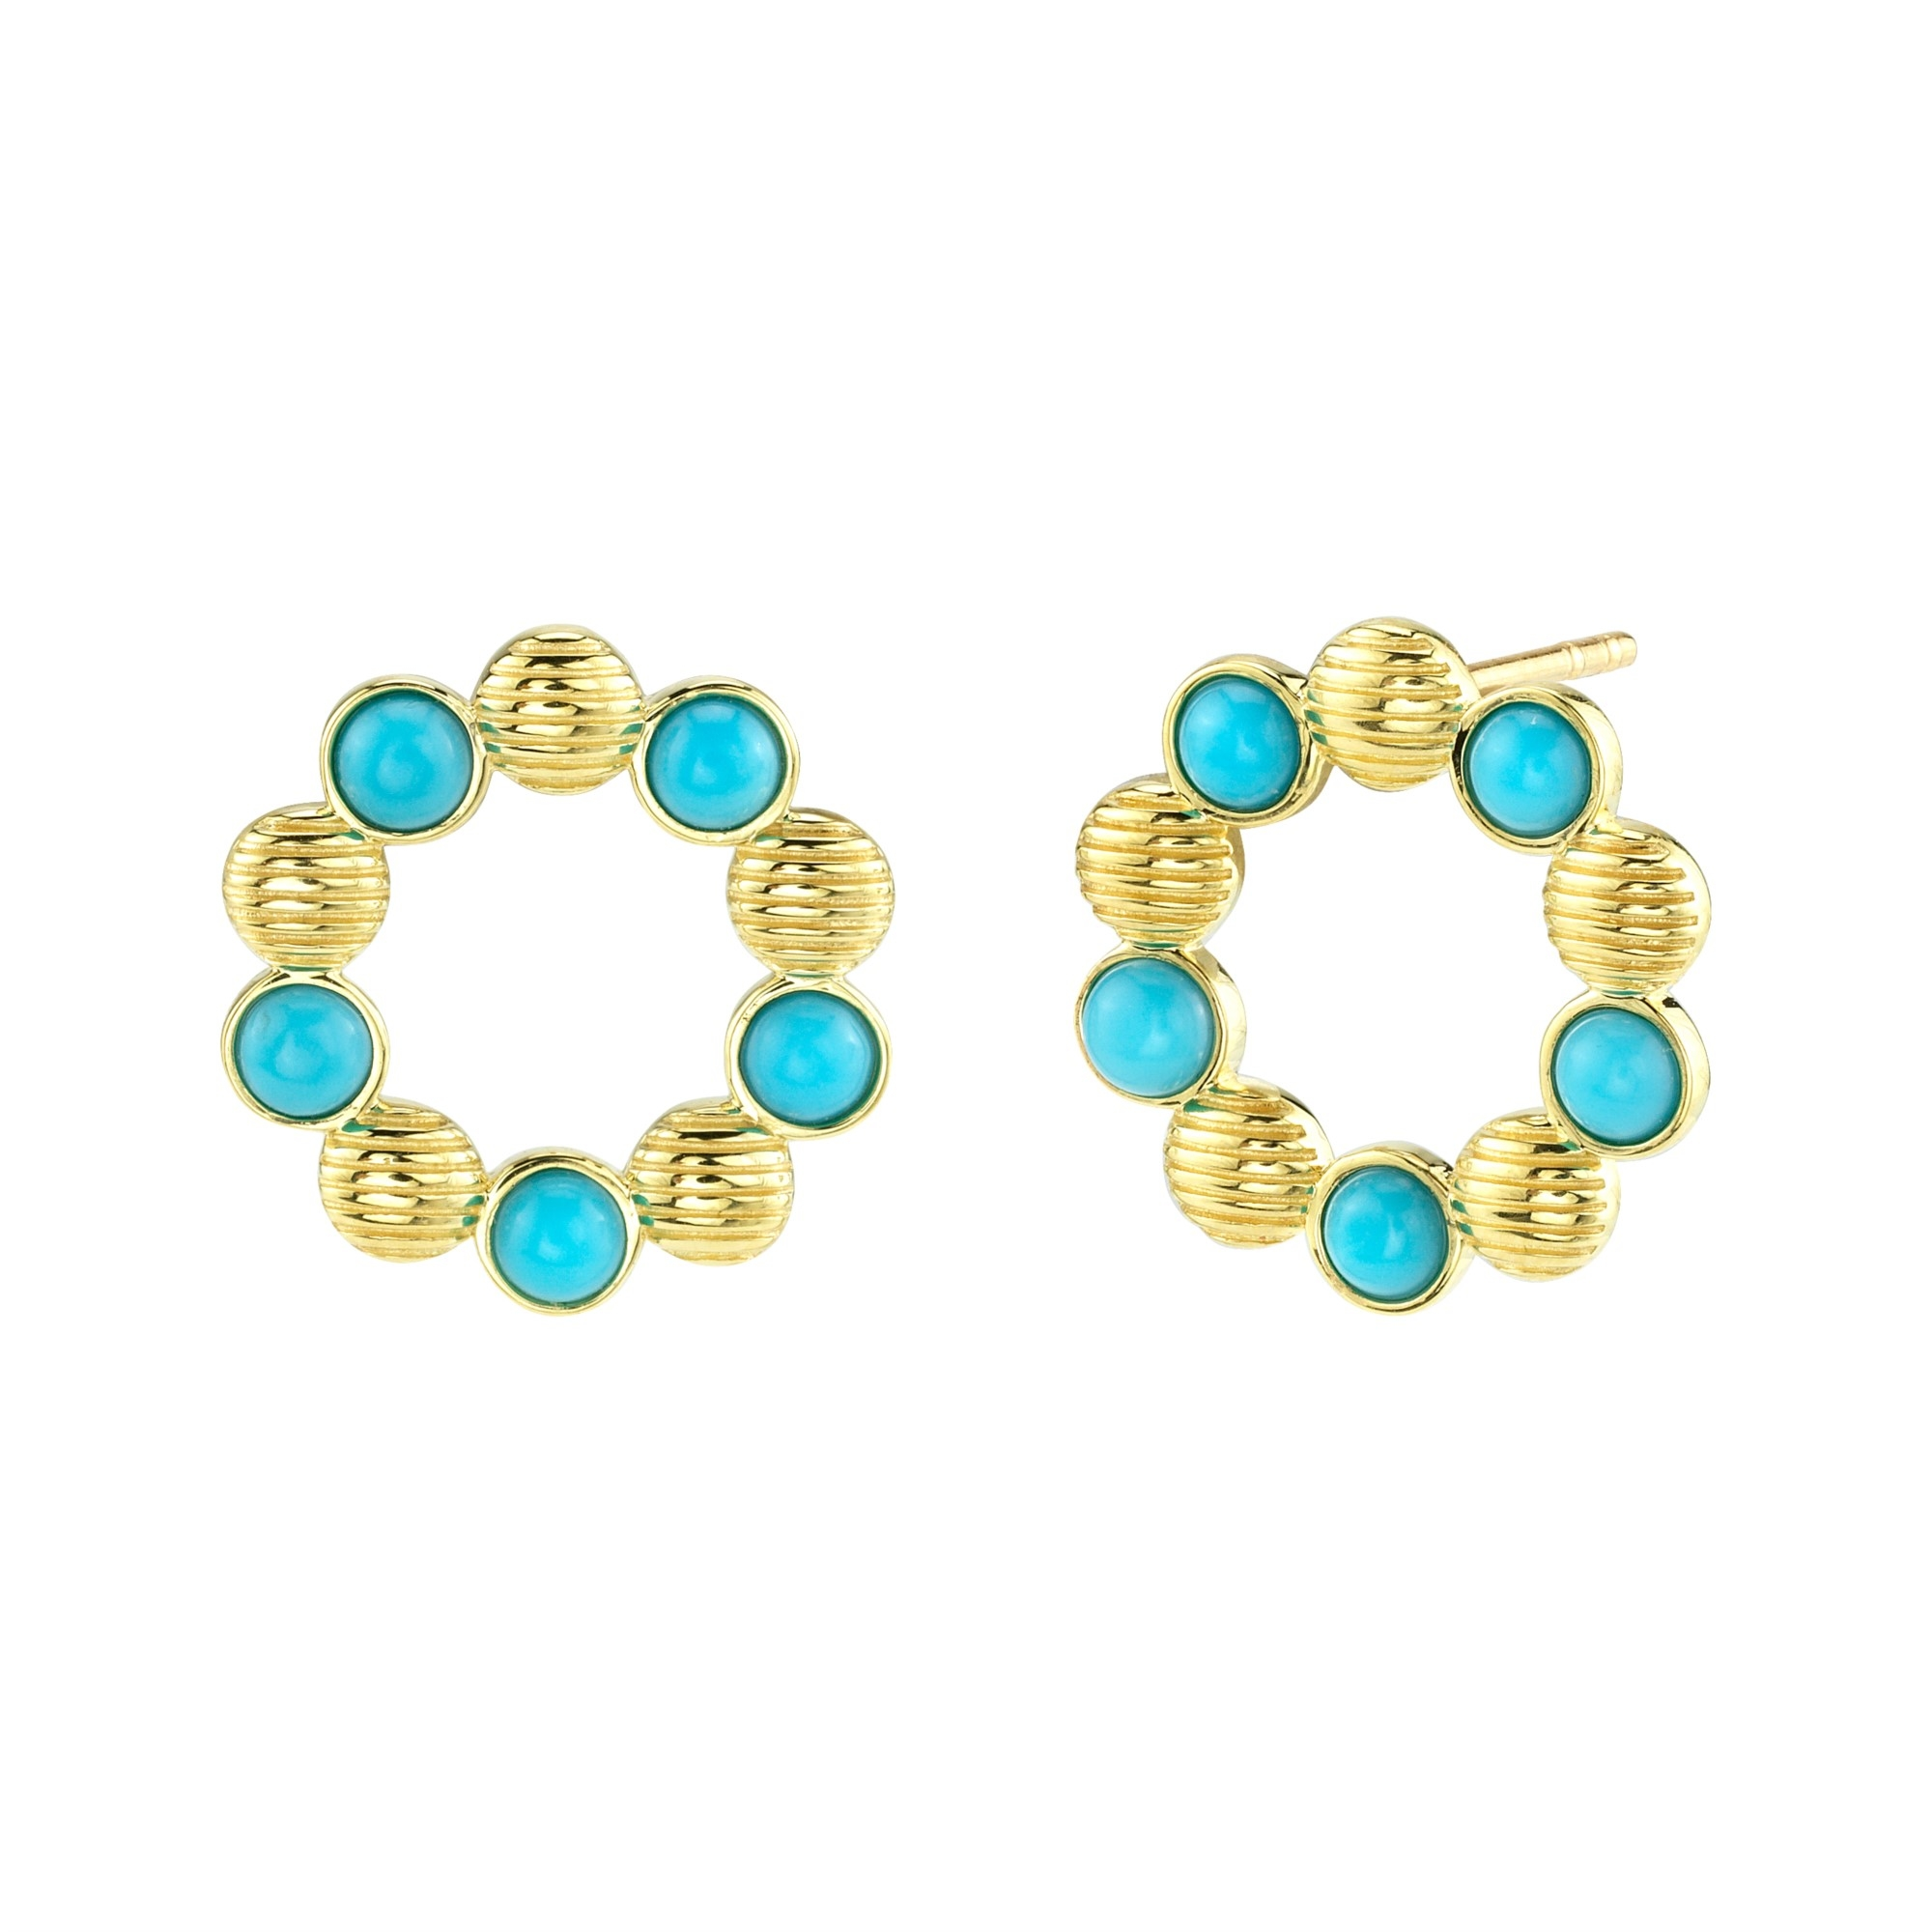 Sloane Street 18K Yellow Gold 1.14cts  Turquoise Gold Earrings with Stones E007F-TQ-Y